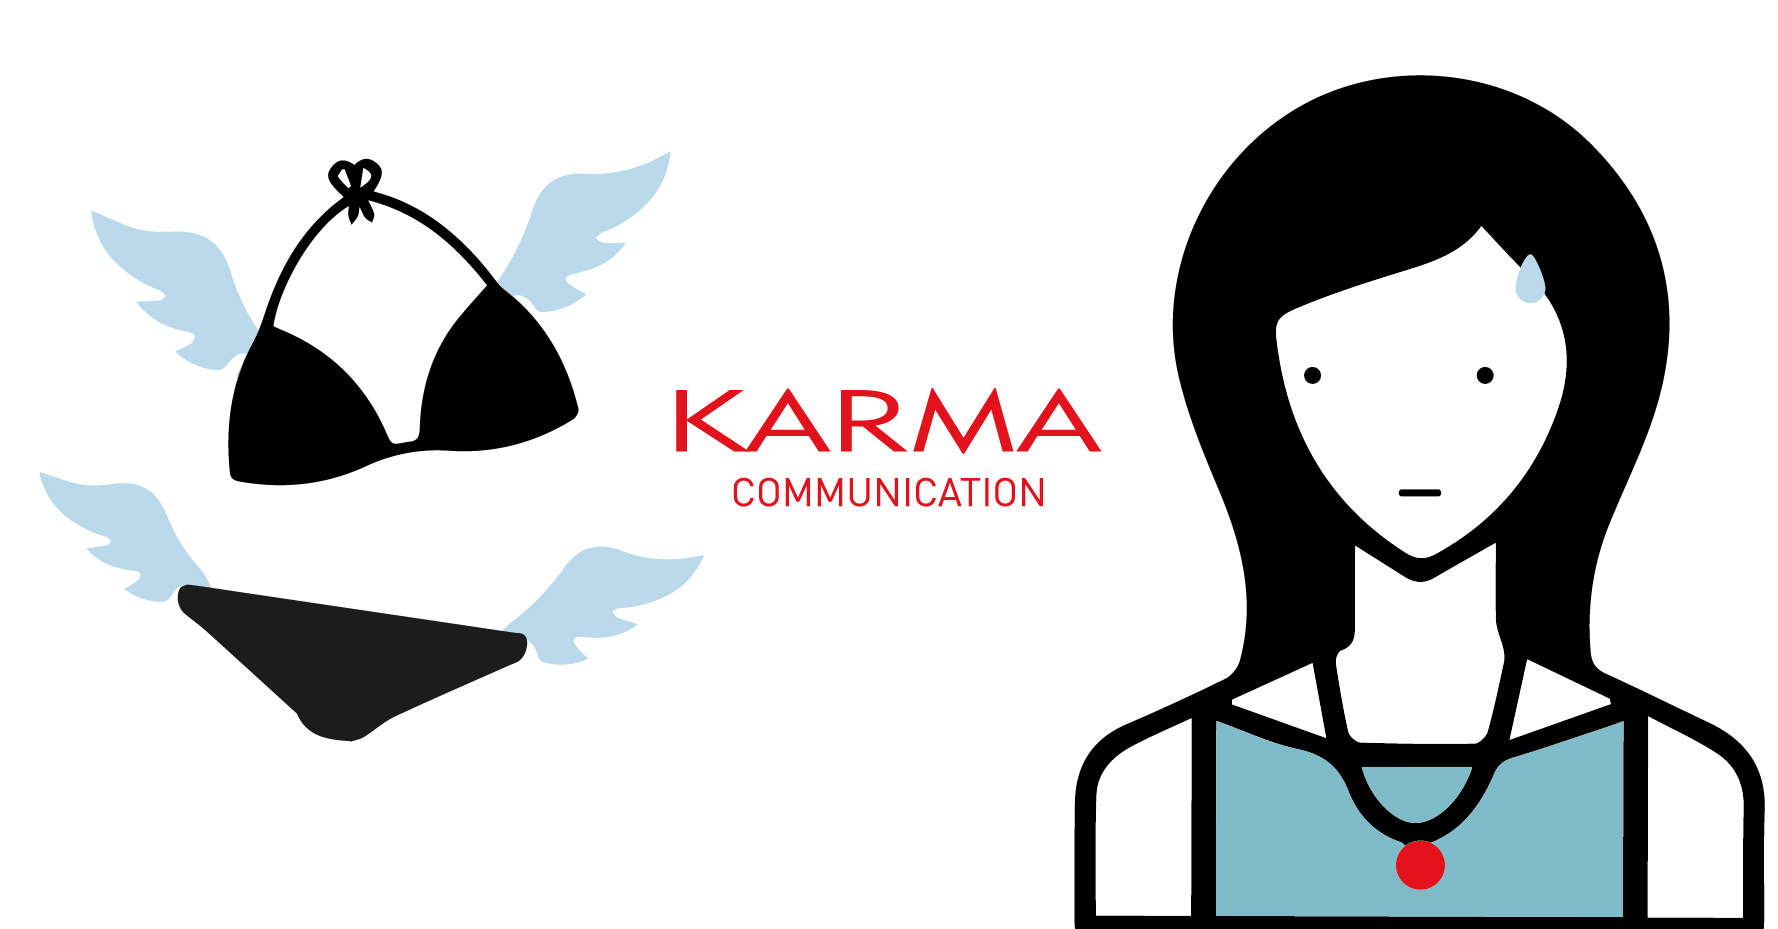 Karma Communication - Ognuno ai posti di comando